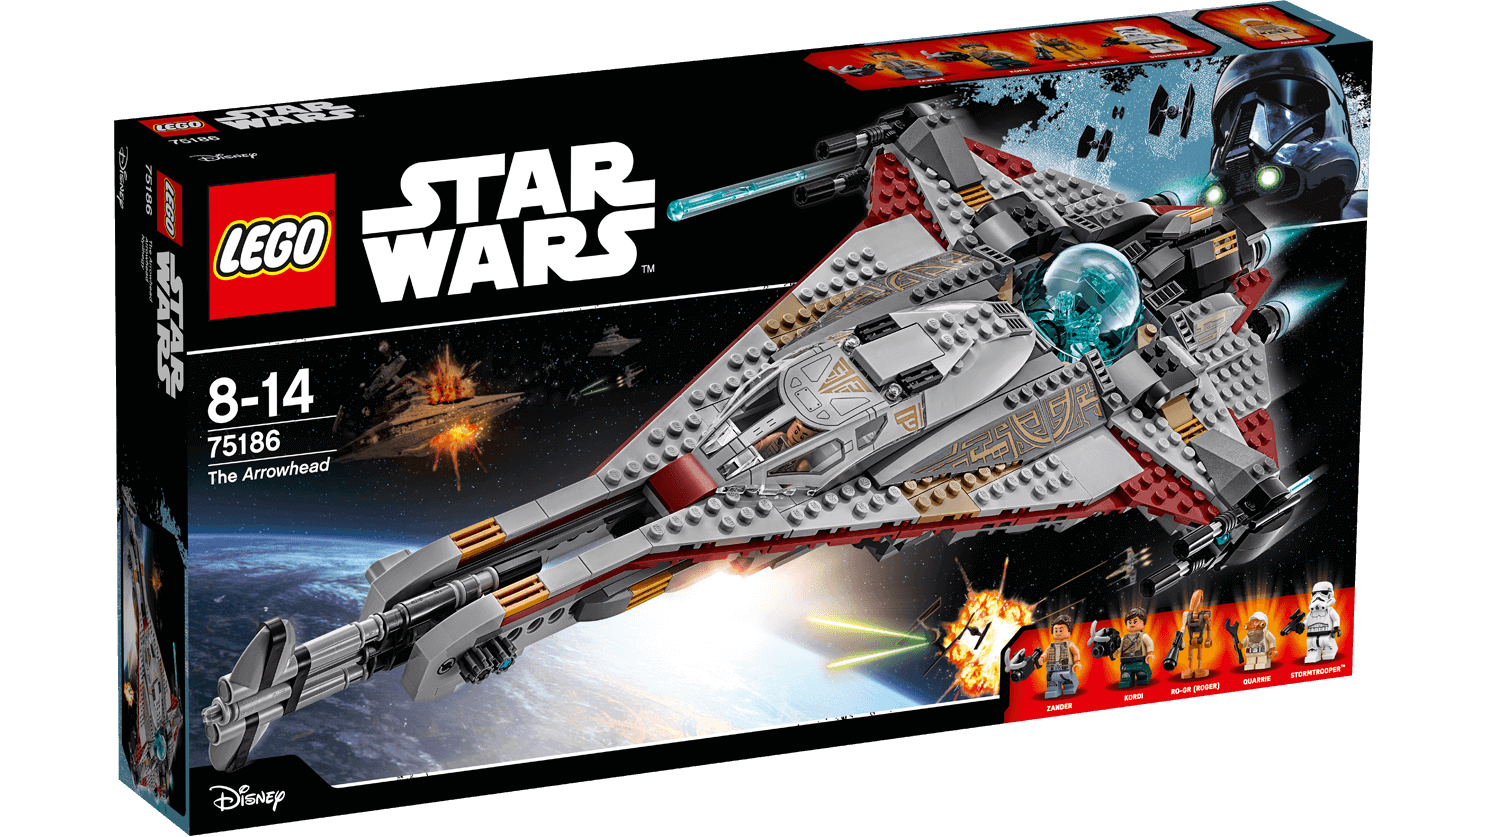 Läs mer om LEGO Star Wars 75186 The Arrowhead